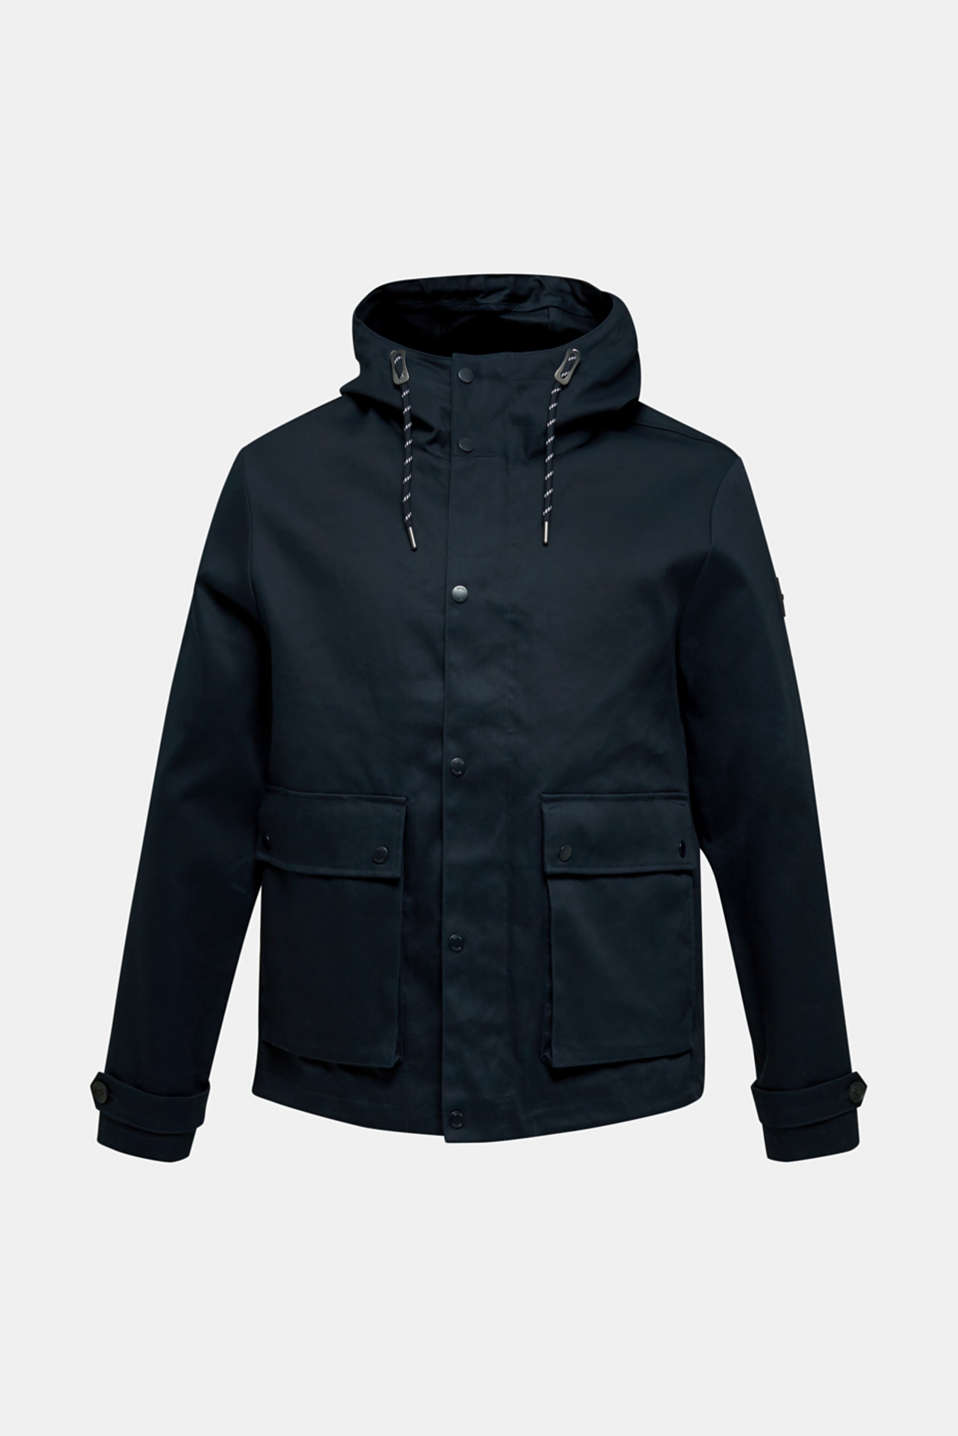 Hooded jacket made of 100% cotton, DARK BLUE, detail image number 7